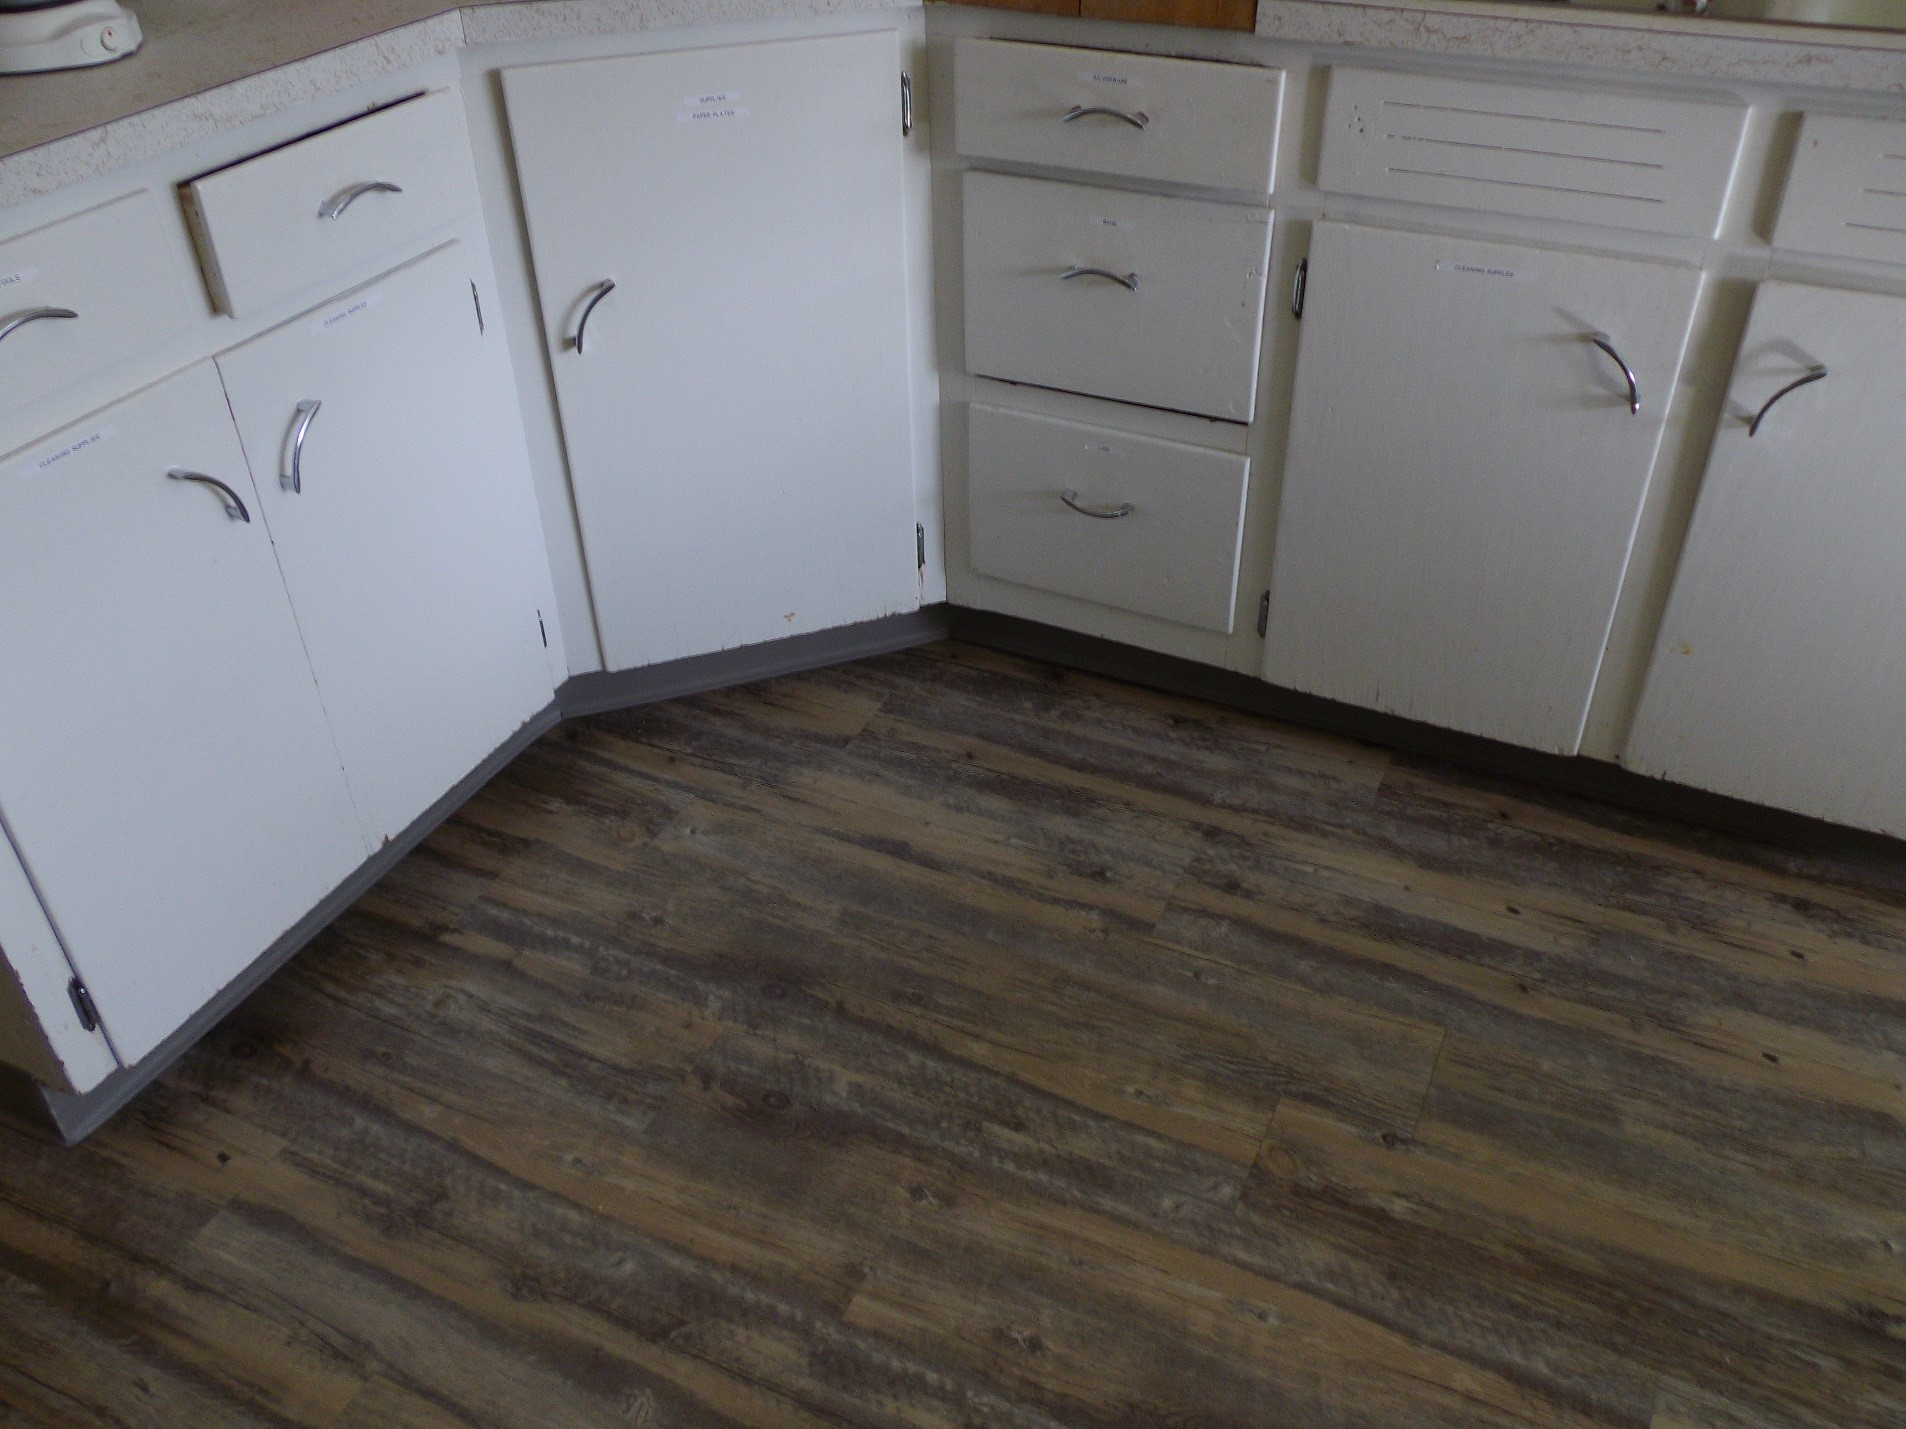 Nice Tarkett Is Well Known Around The United States For Their New Fiber Floor  Vinyl. They Had Scientifically Engineered The Fiber Floor With Fiber Glass,  ...